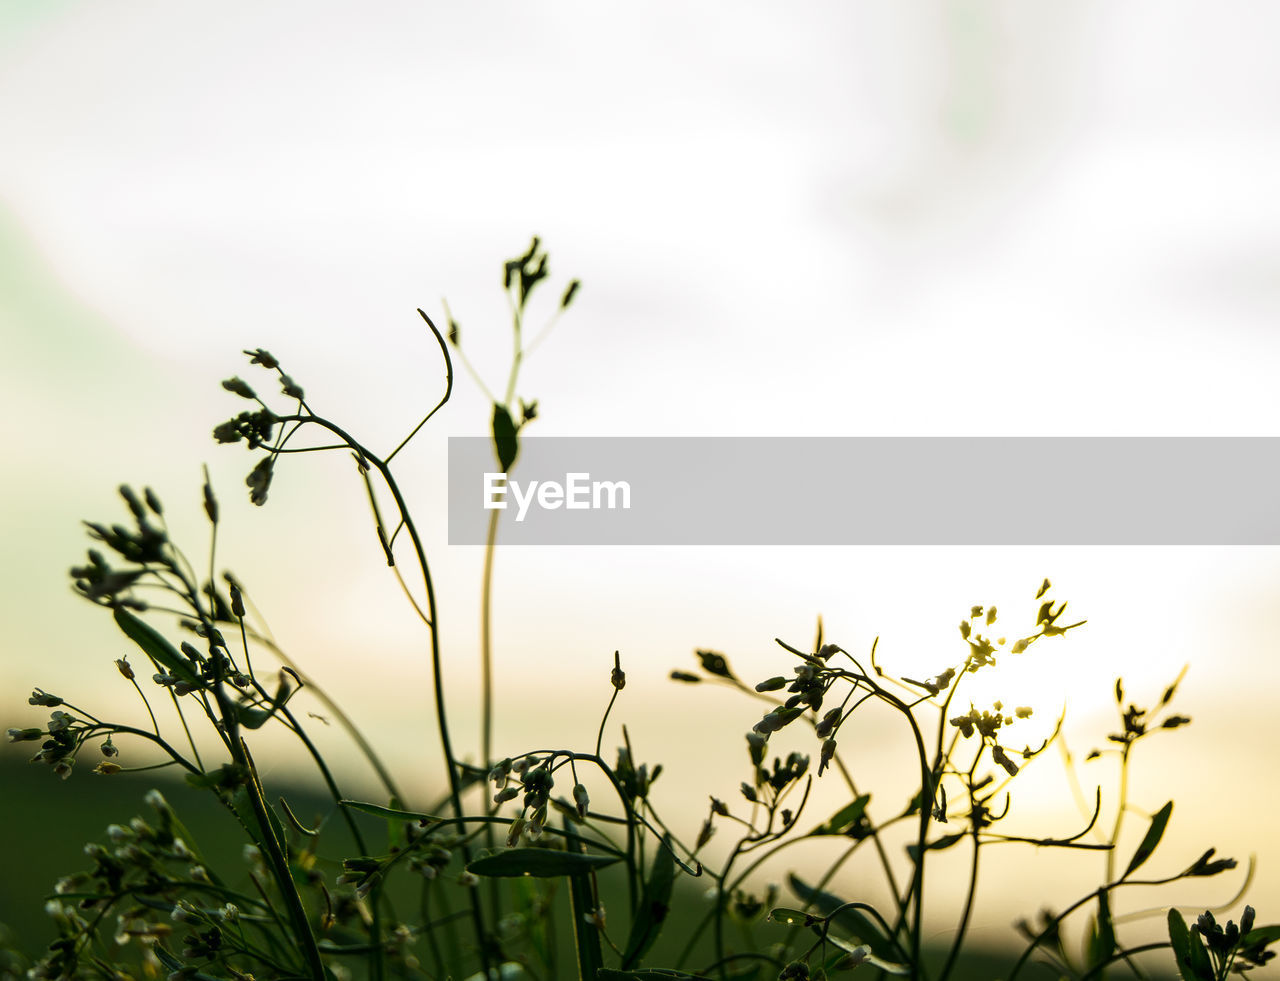 growth, nature, plant, beauty in nature, no people, field, tranquility, outdoors, flower, day, freshness, fragility, sky, close-up